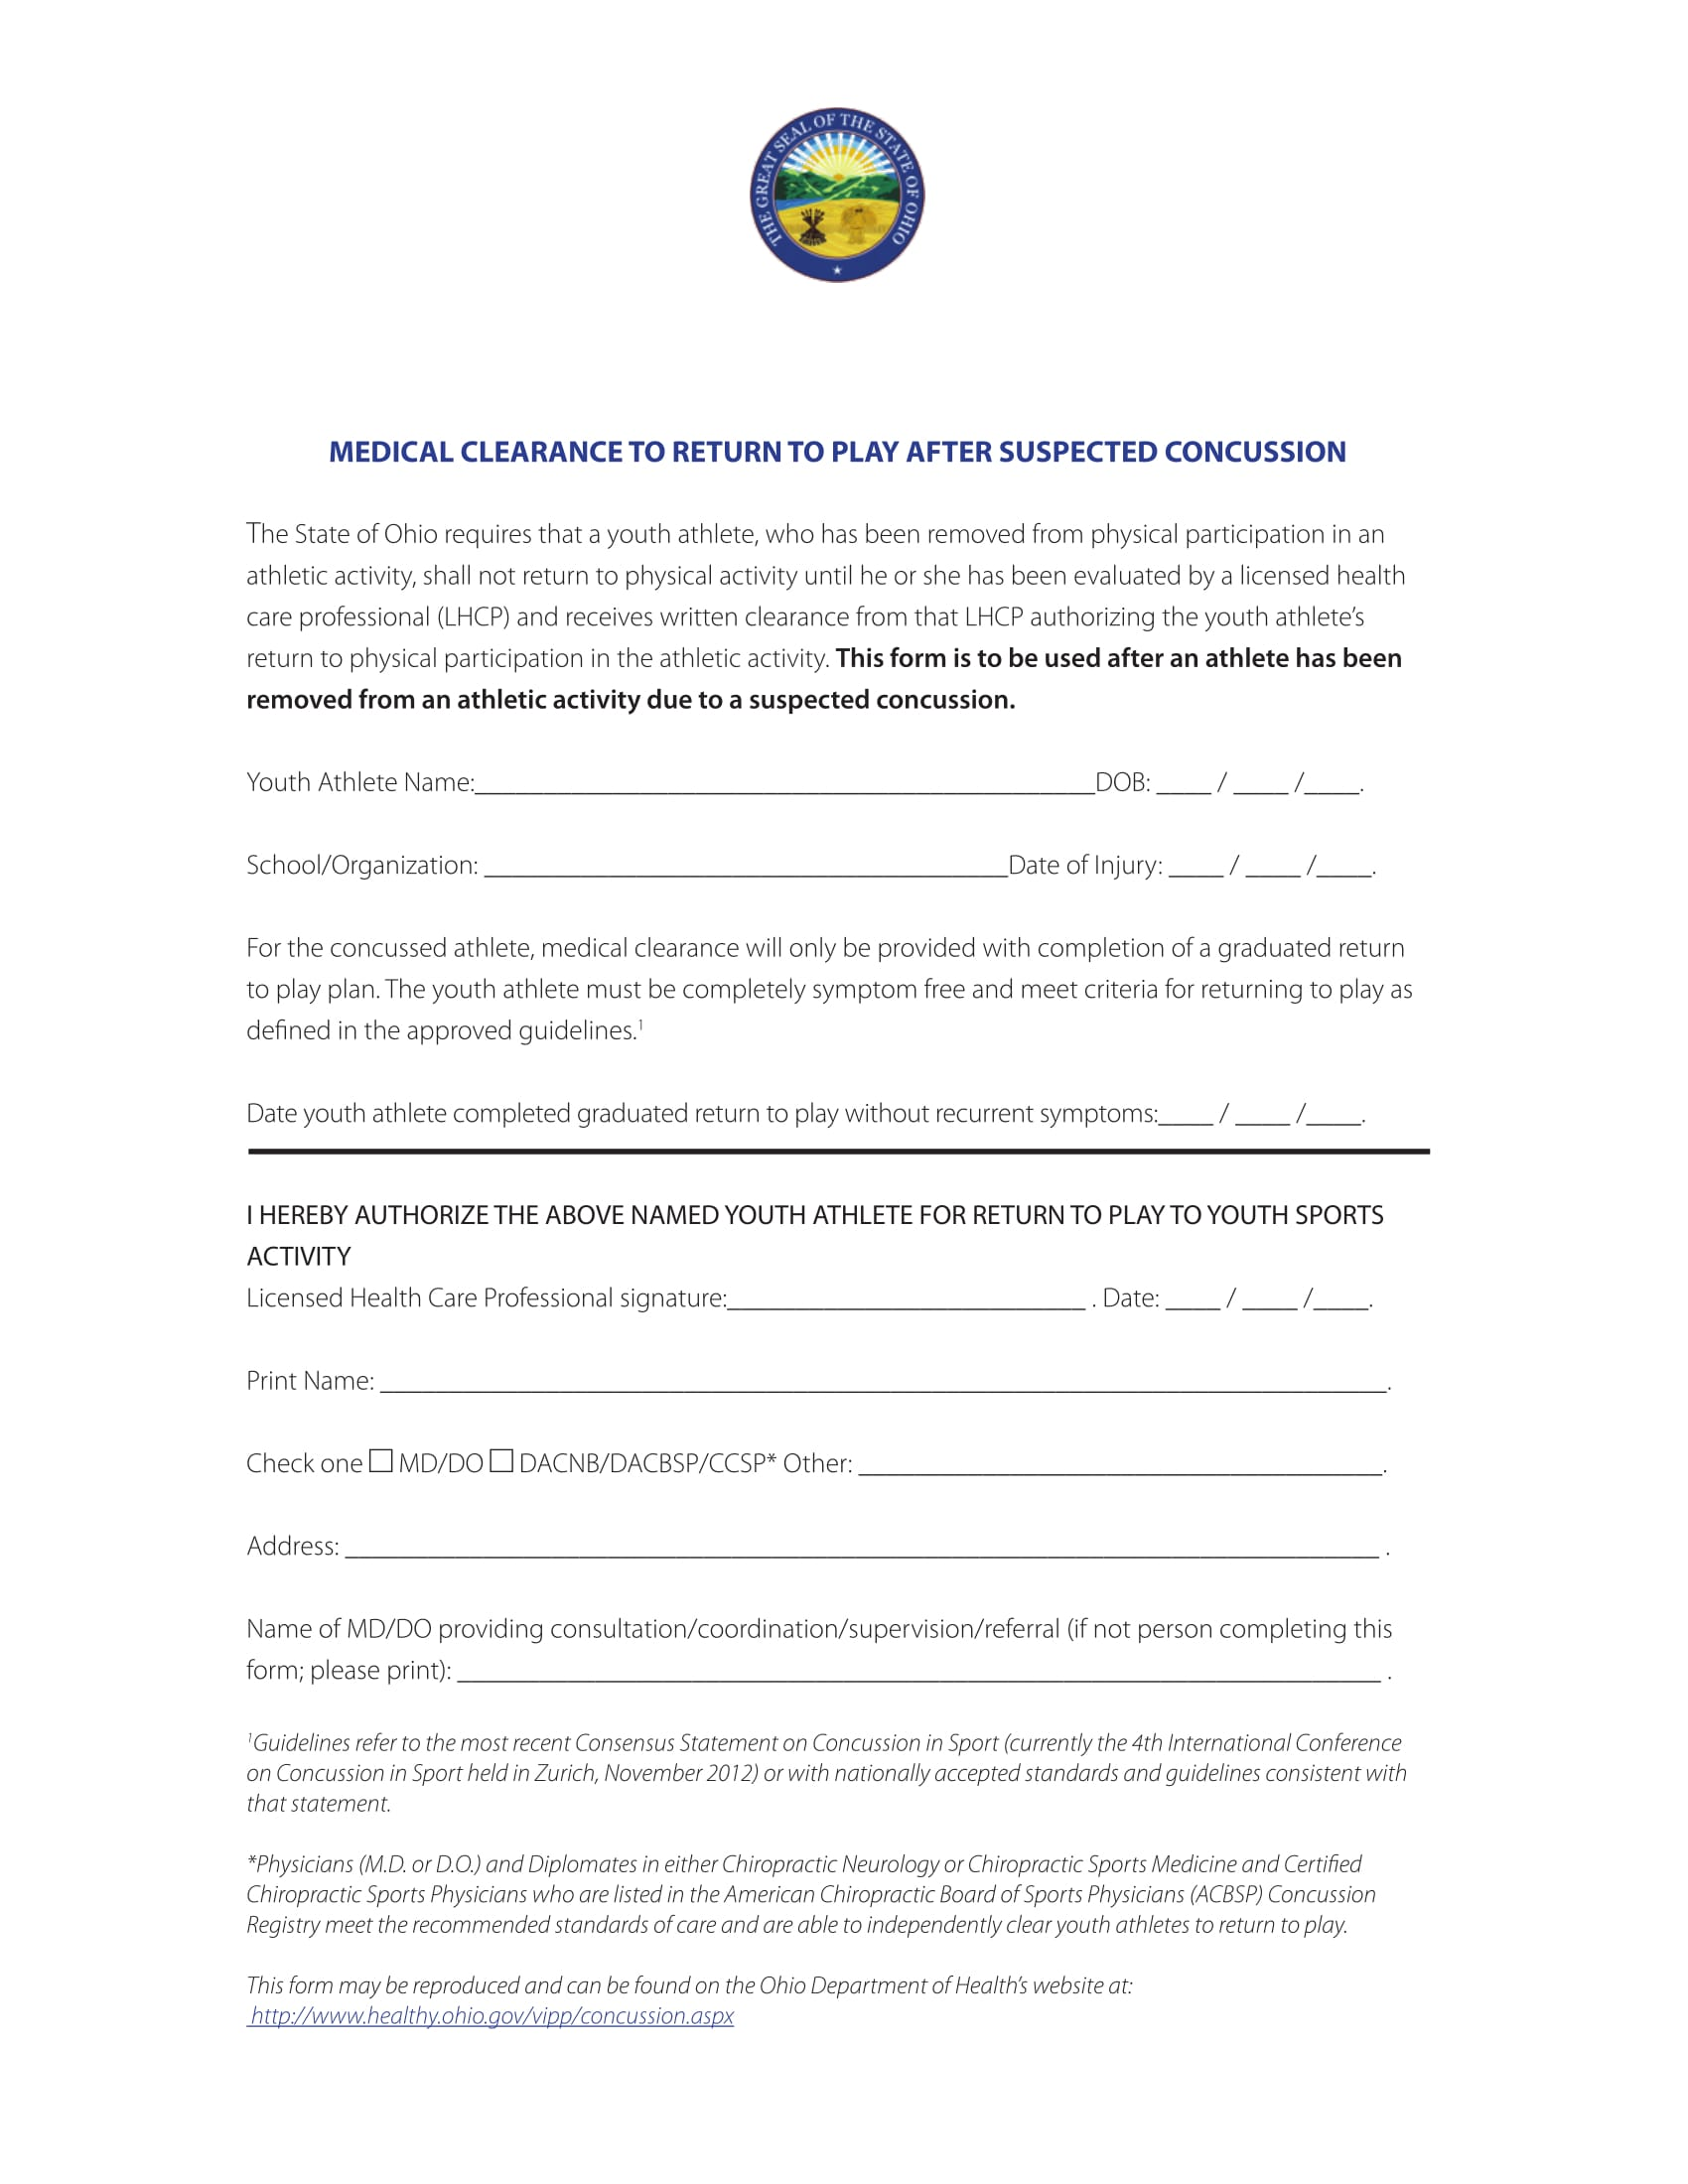 concussion medical clearance form 1